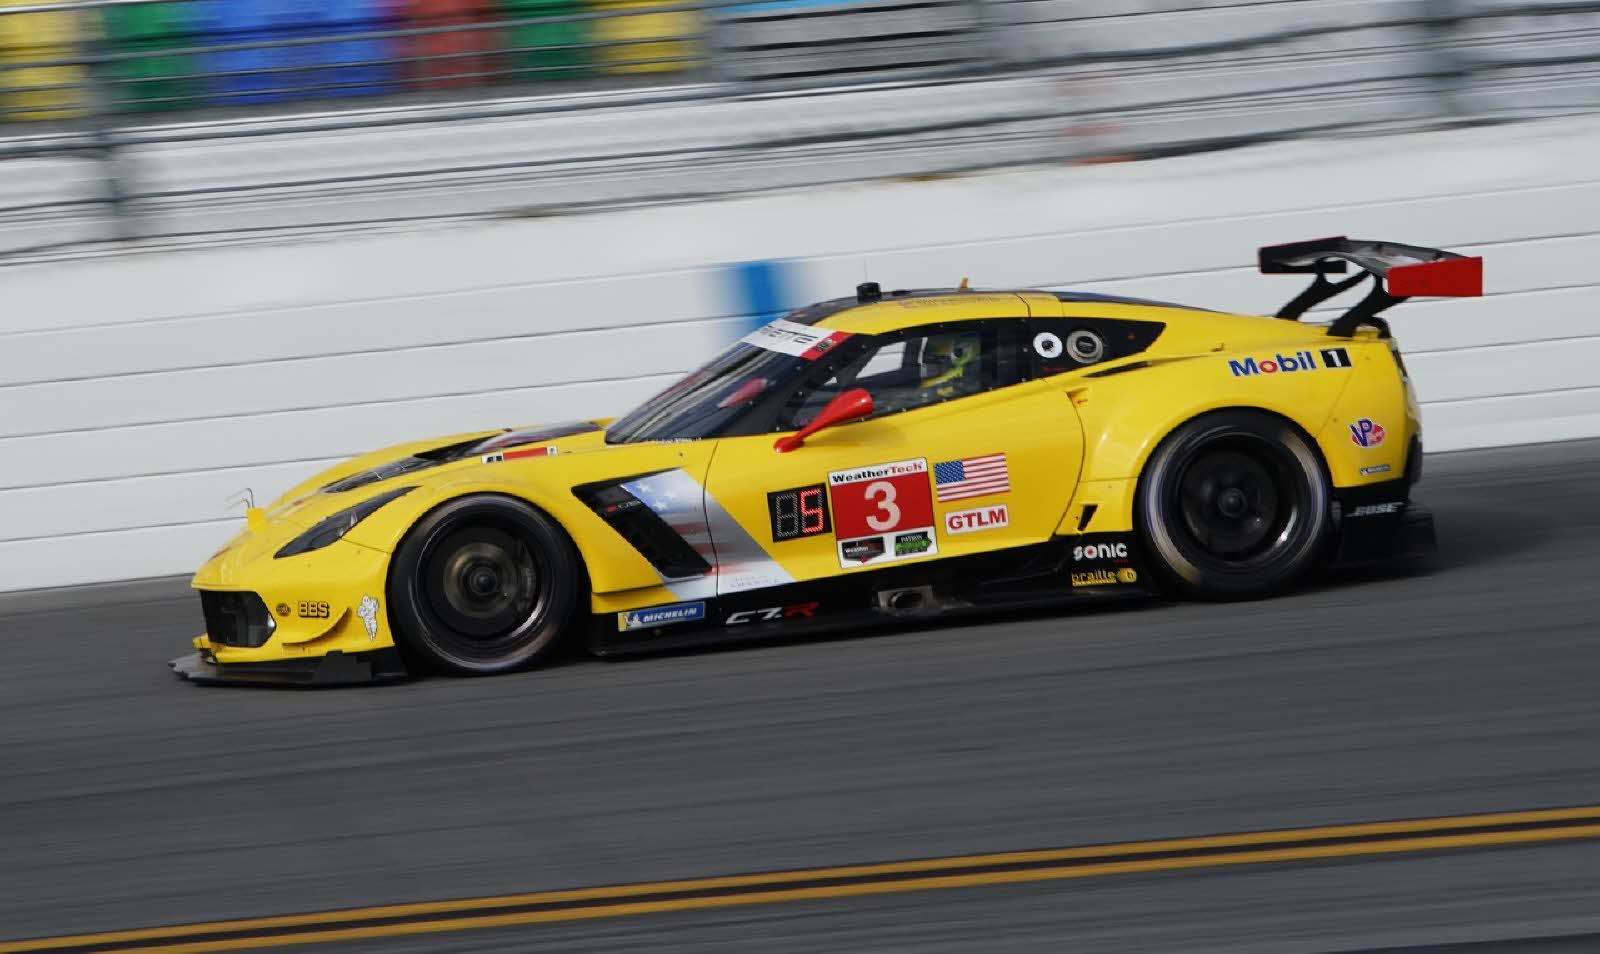 Mike Rockenfeller piloting the Corvette. [Jack Webster Photo]